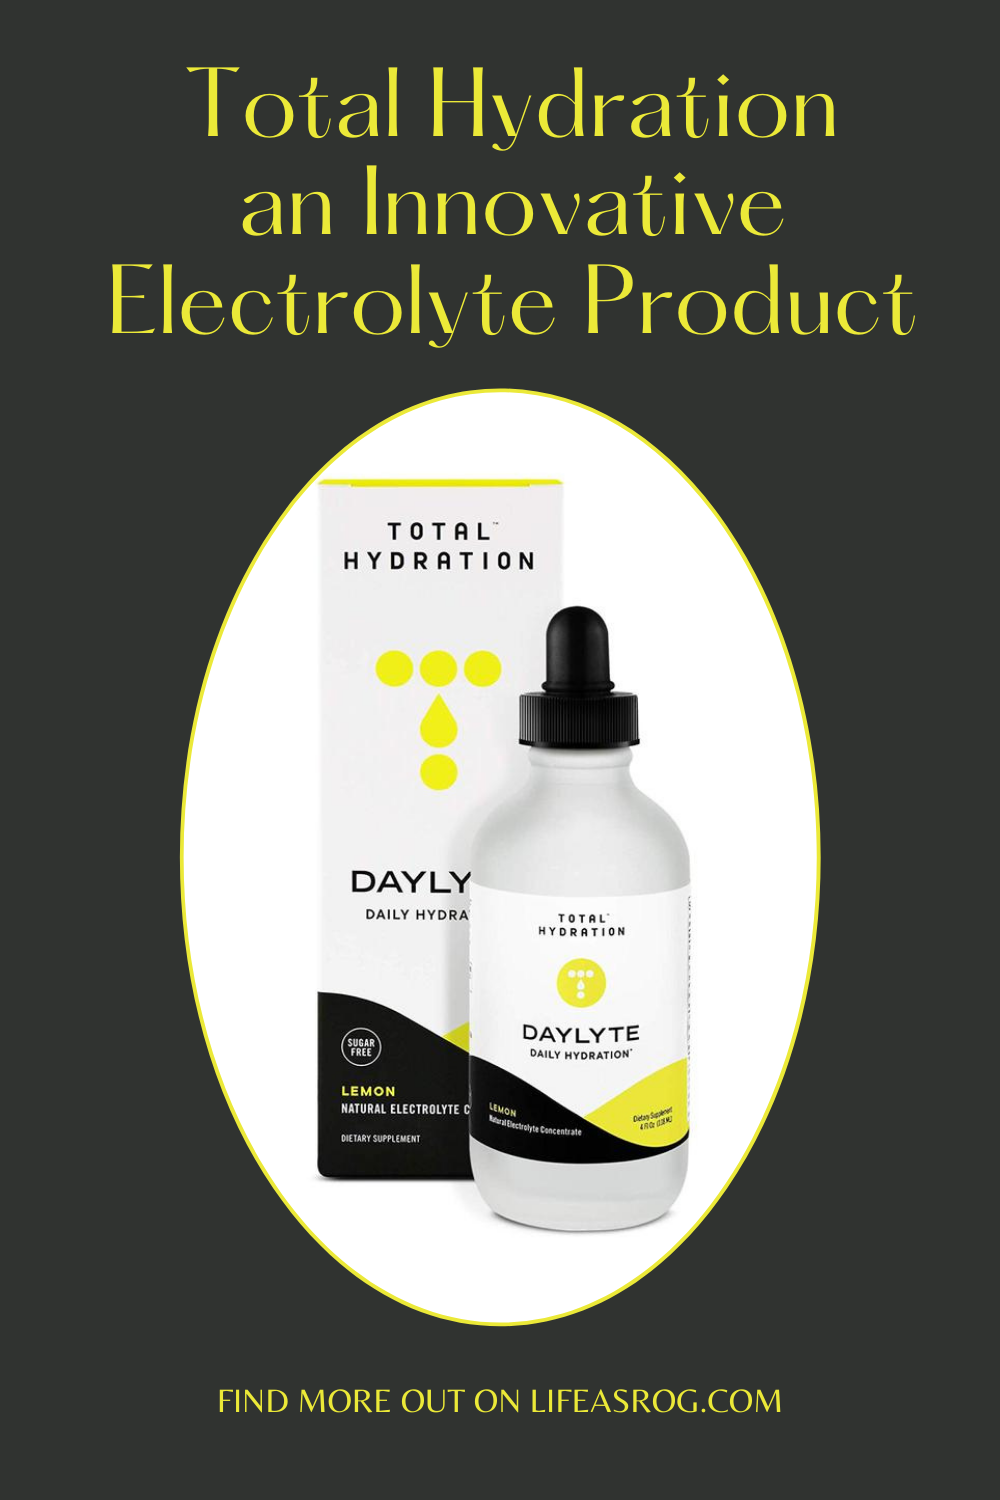 Total Hydration an Innovative Electrolyte Product